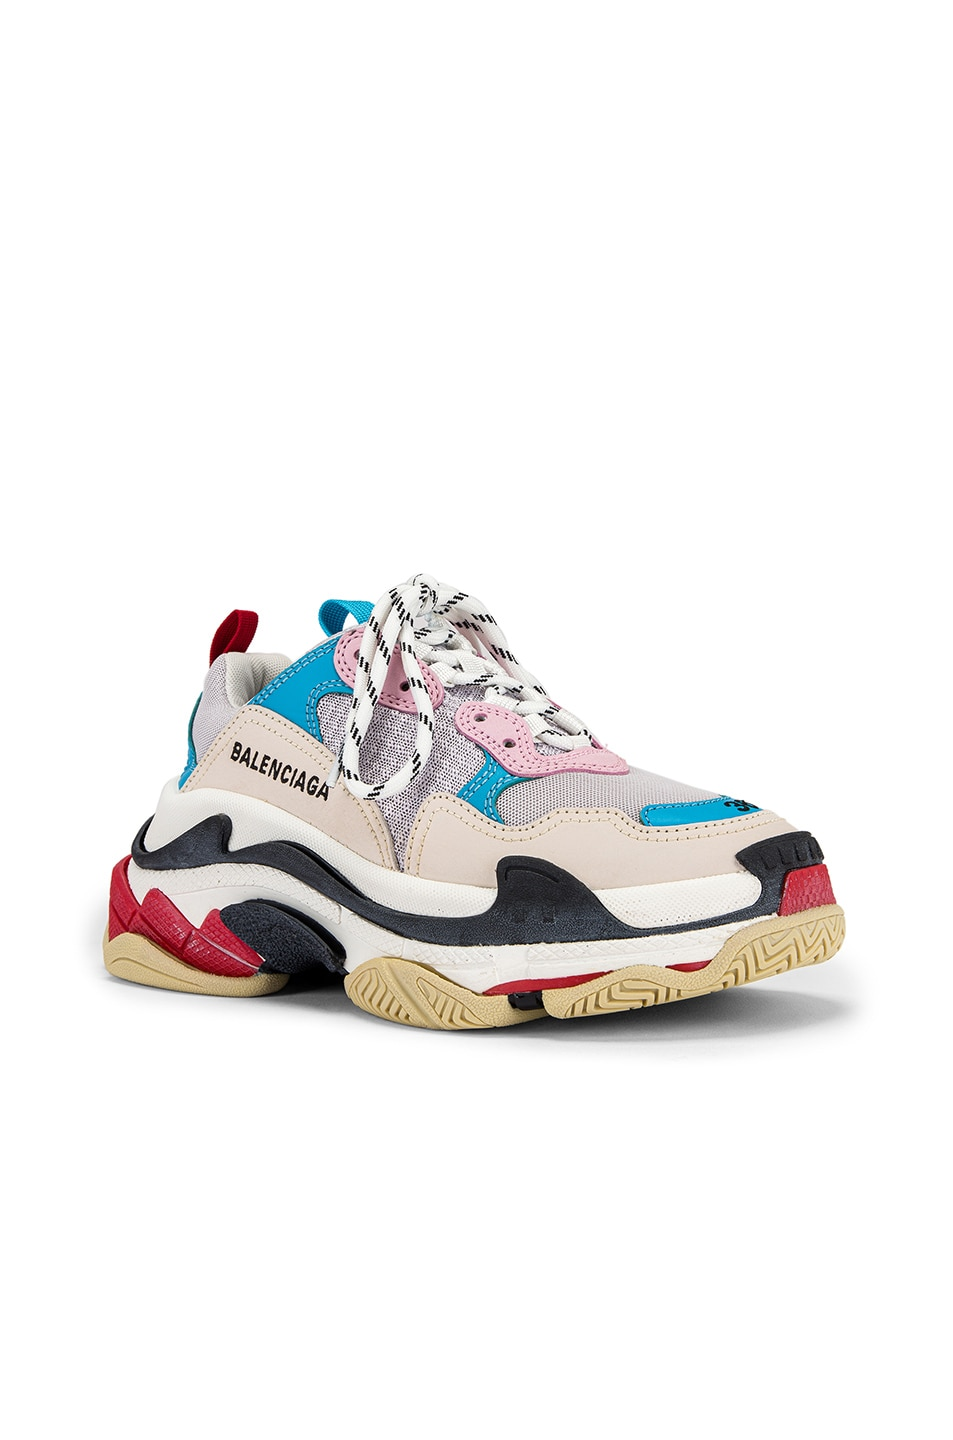 Image 2 of Balenciaga Triple S Sneakers in White & Blue